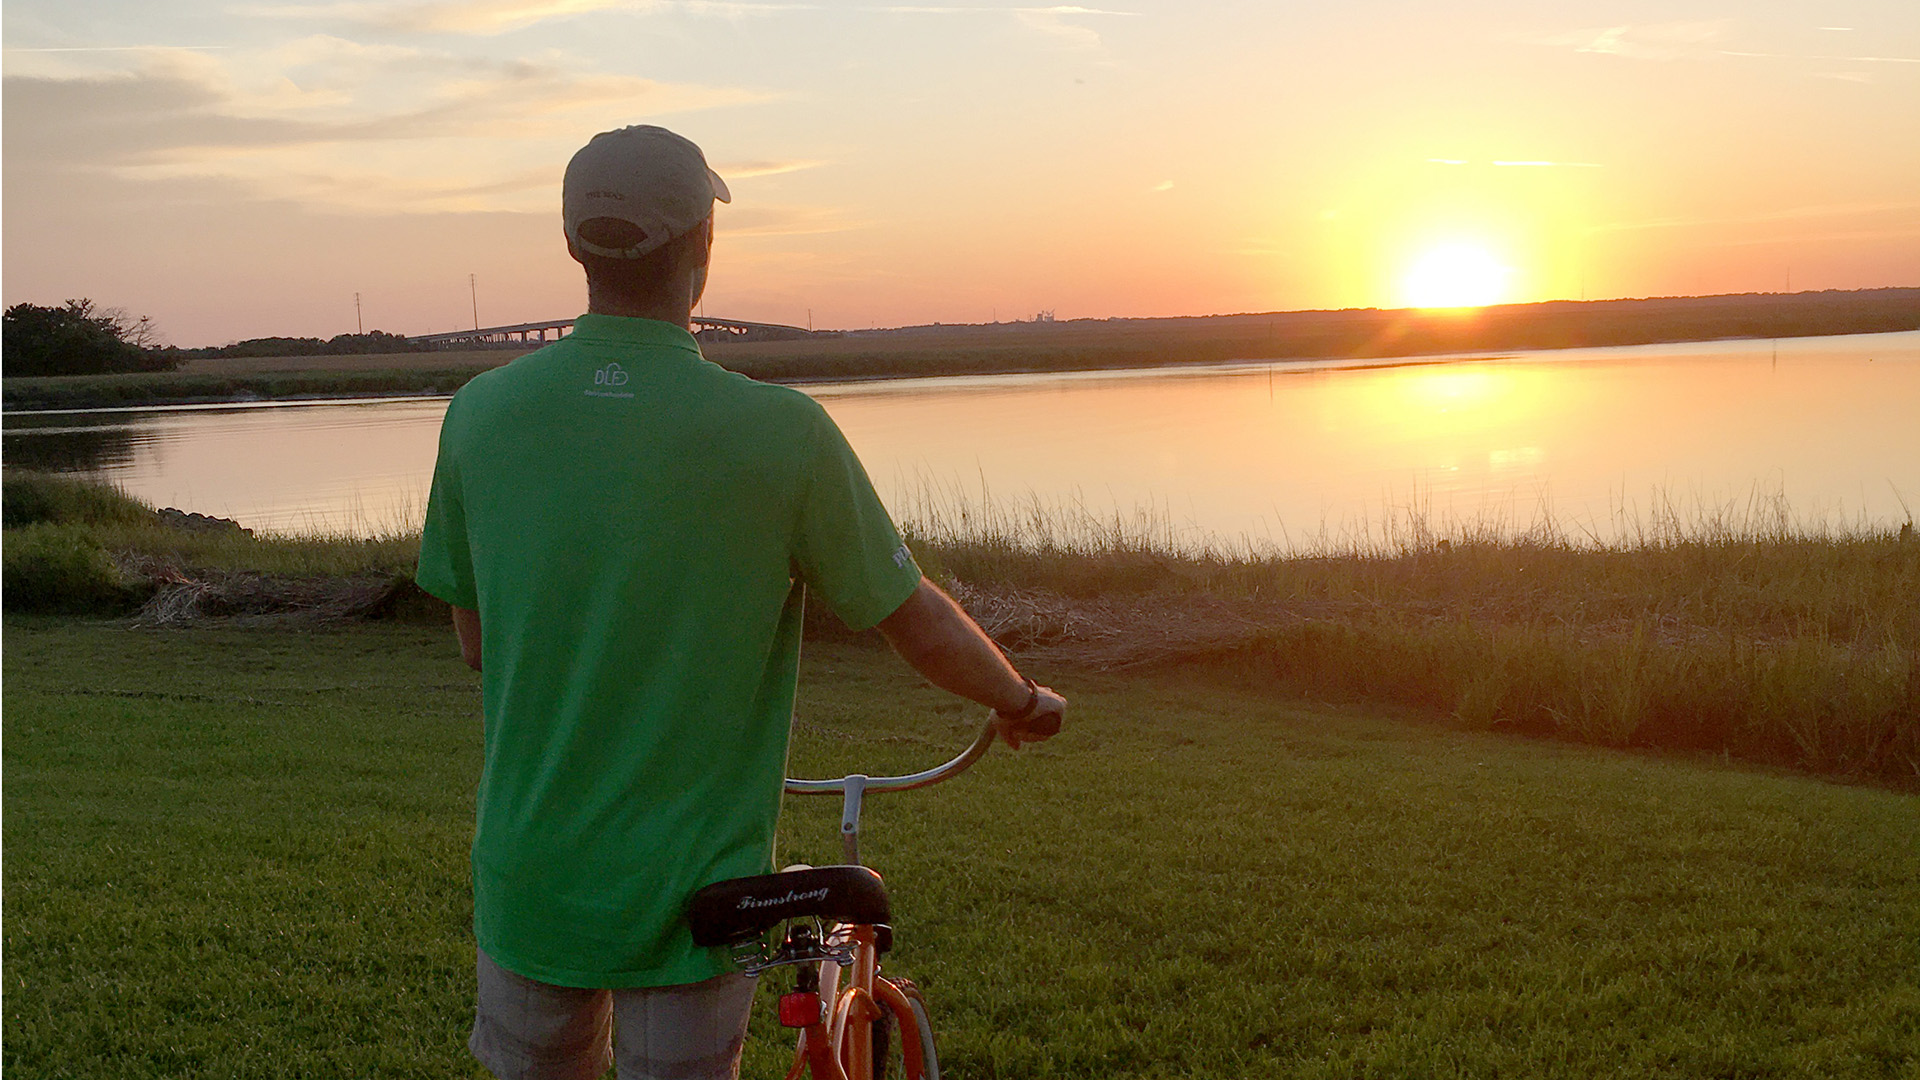 Orange Bike One Person James Parker Sunset-Epworth by the Sea -St Simons Island